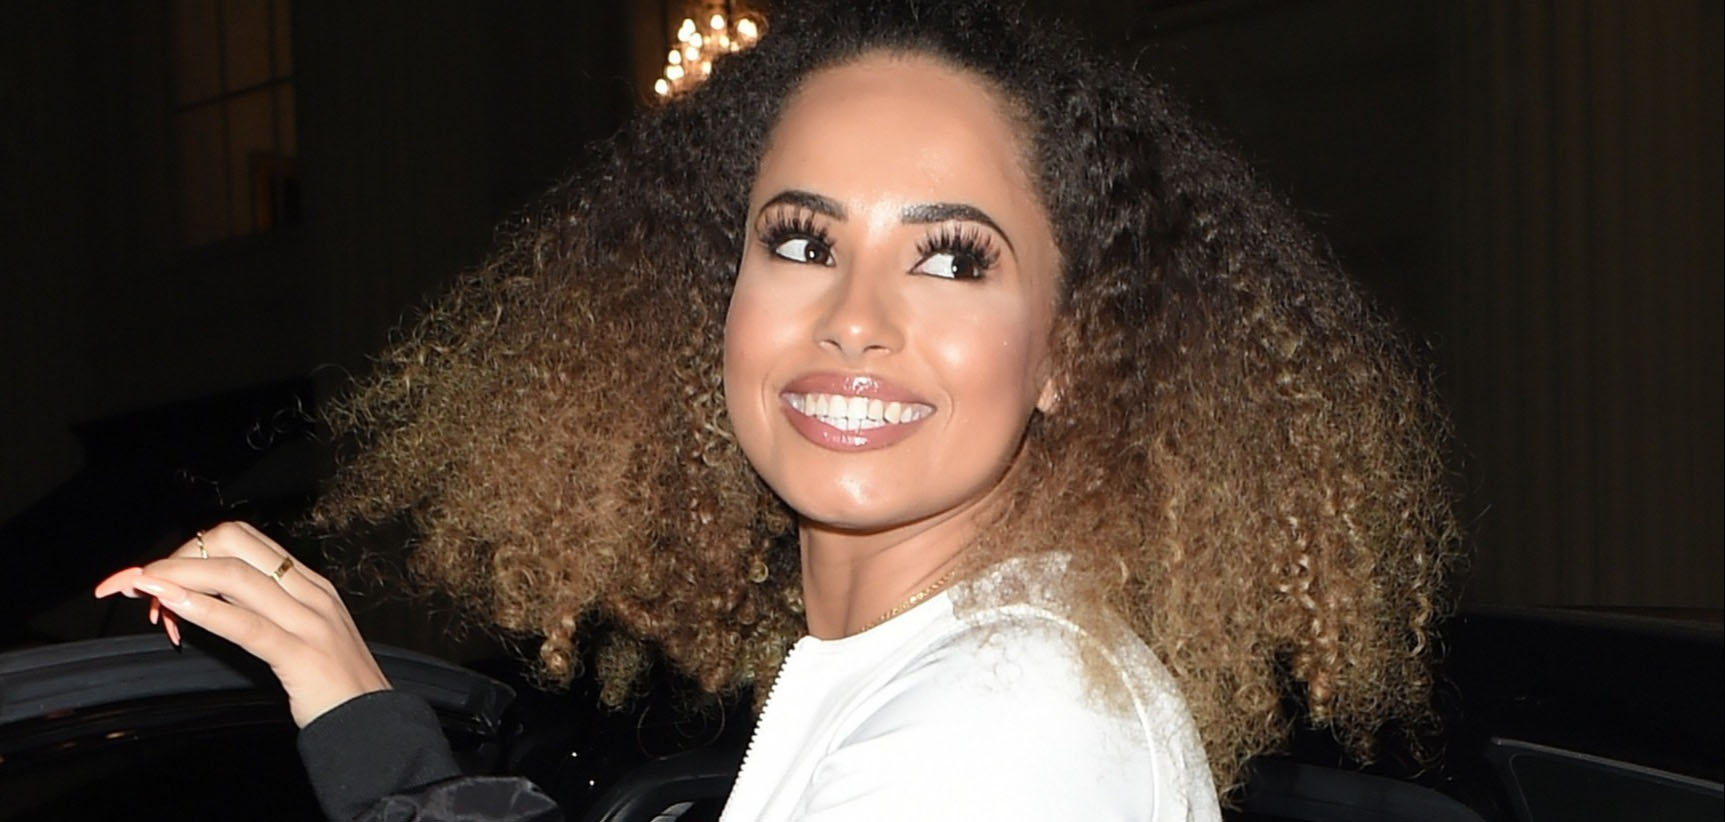 Love Island winner Amber Gill donates fashion edit profits to mental health charity